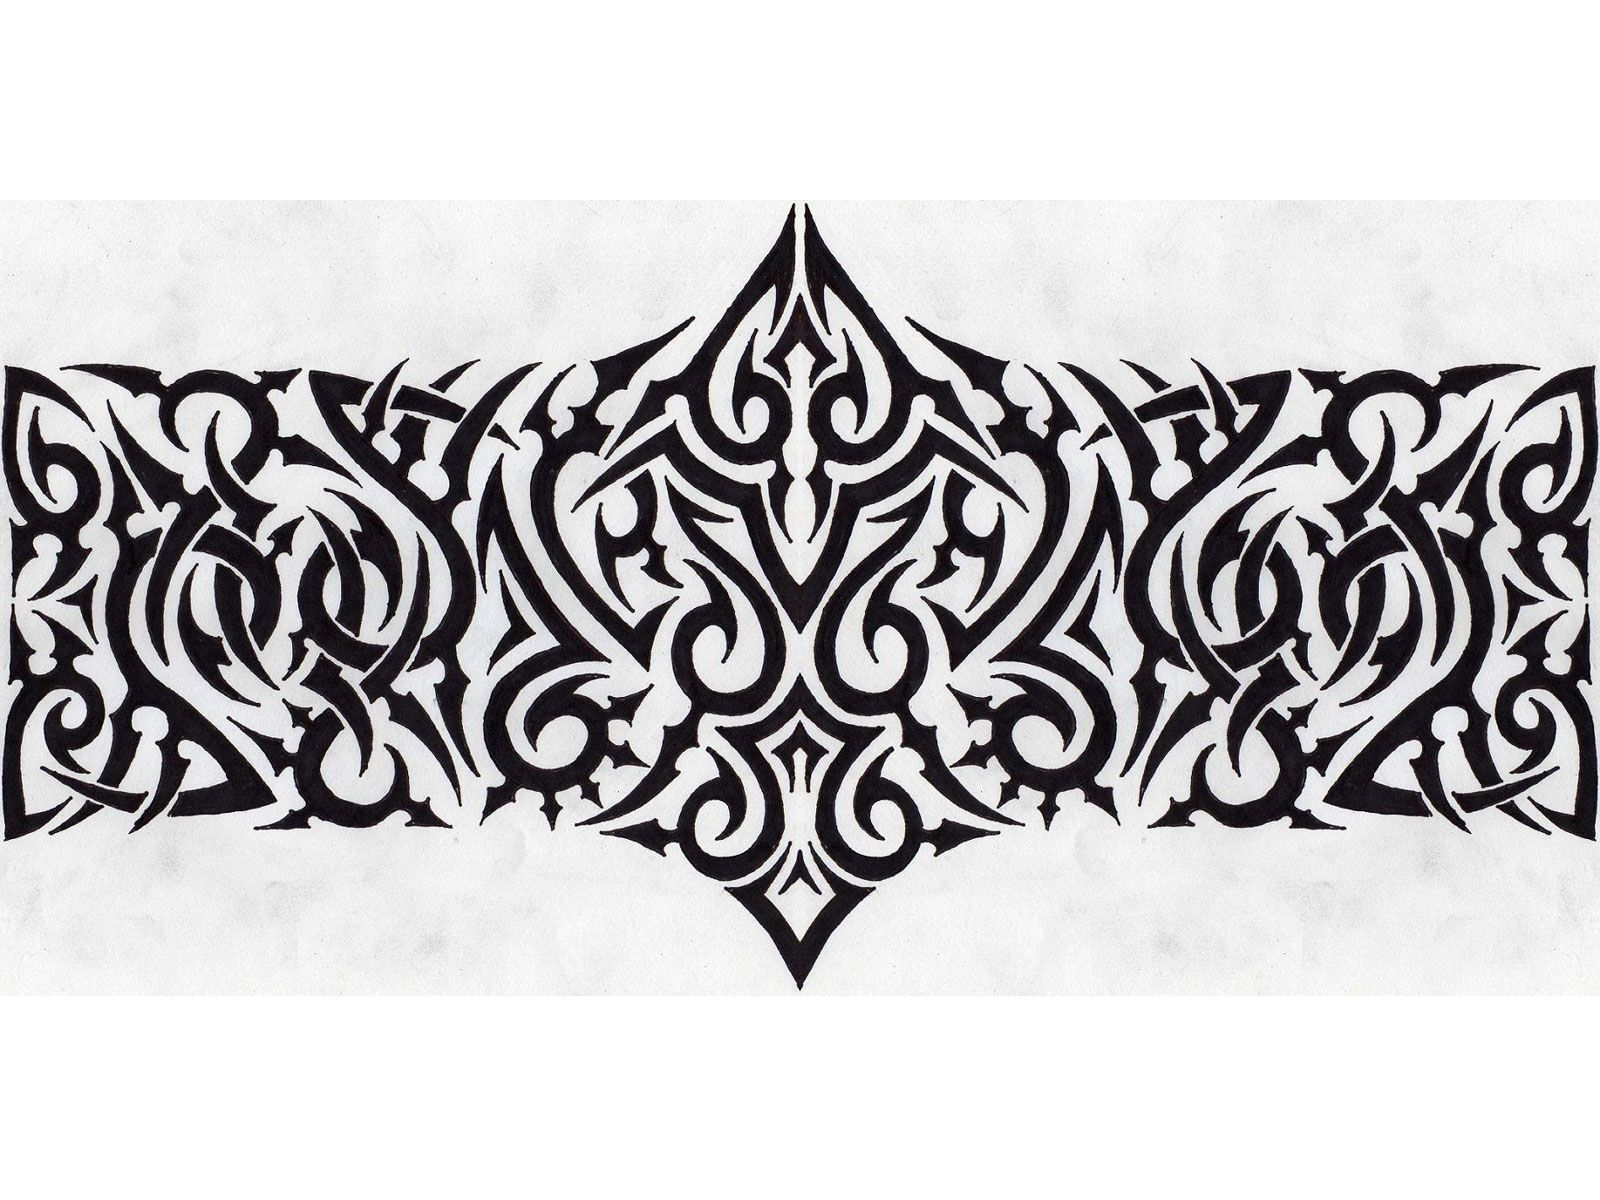 Tribal Armband Tattoo Designs Band tattoo designs, Band